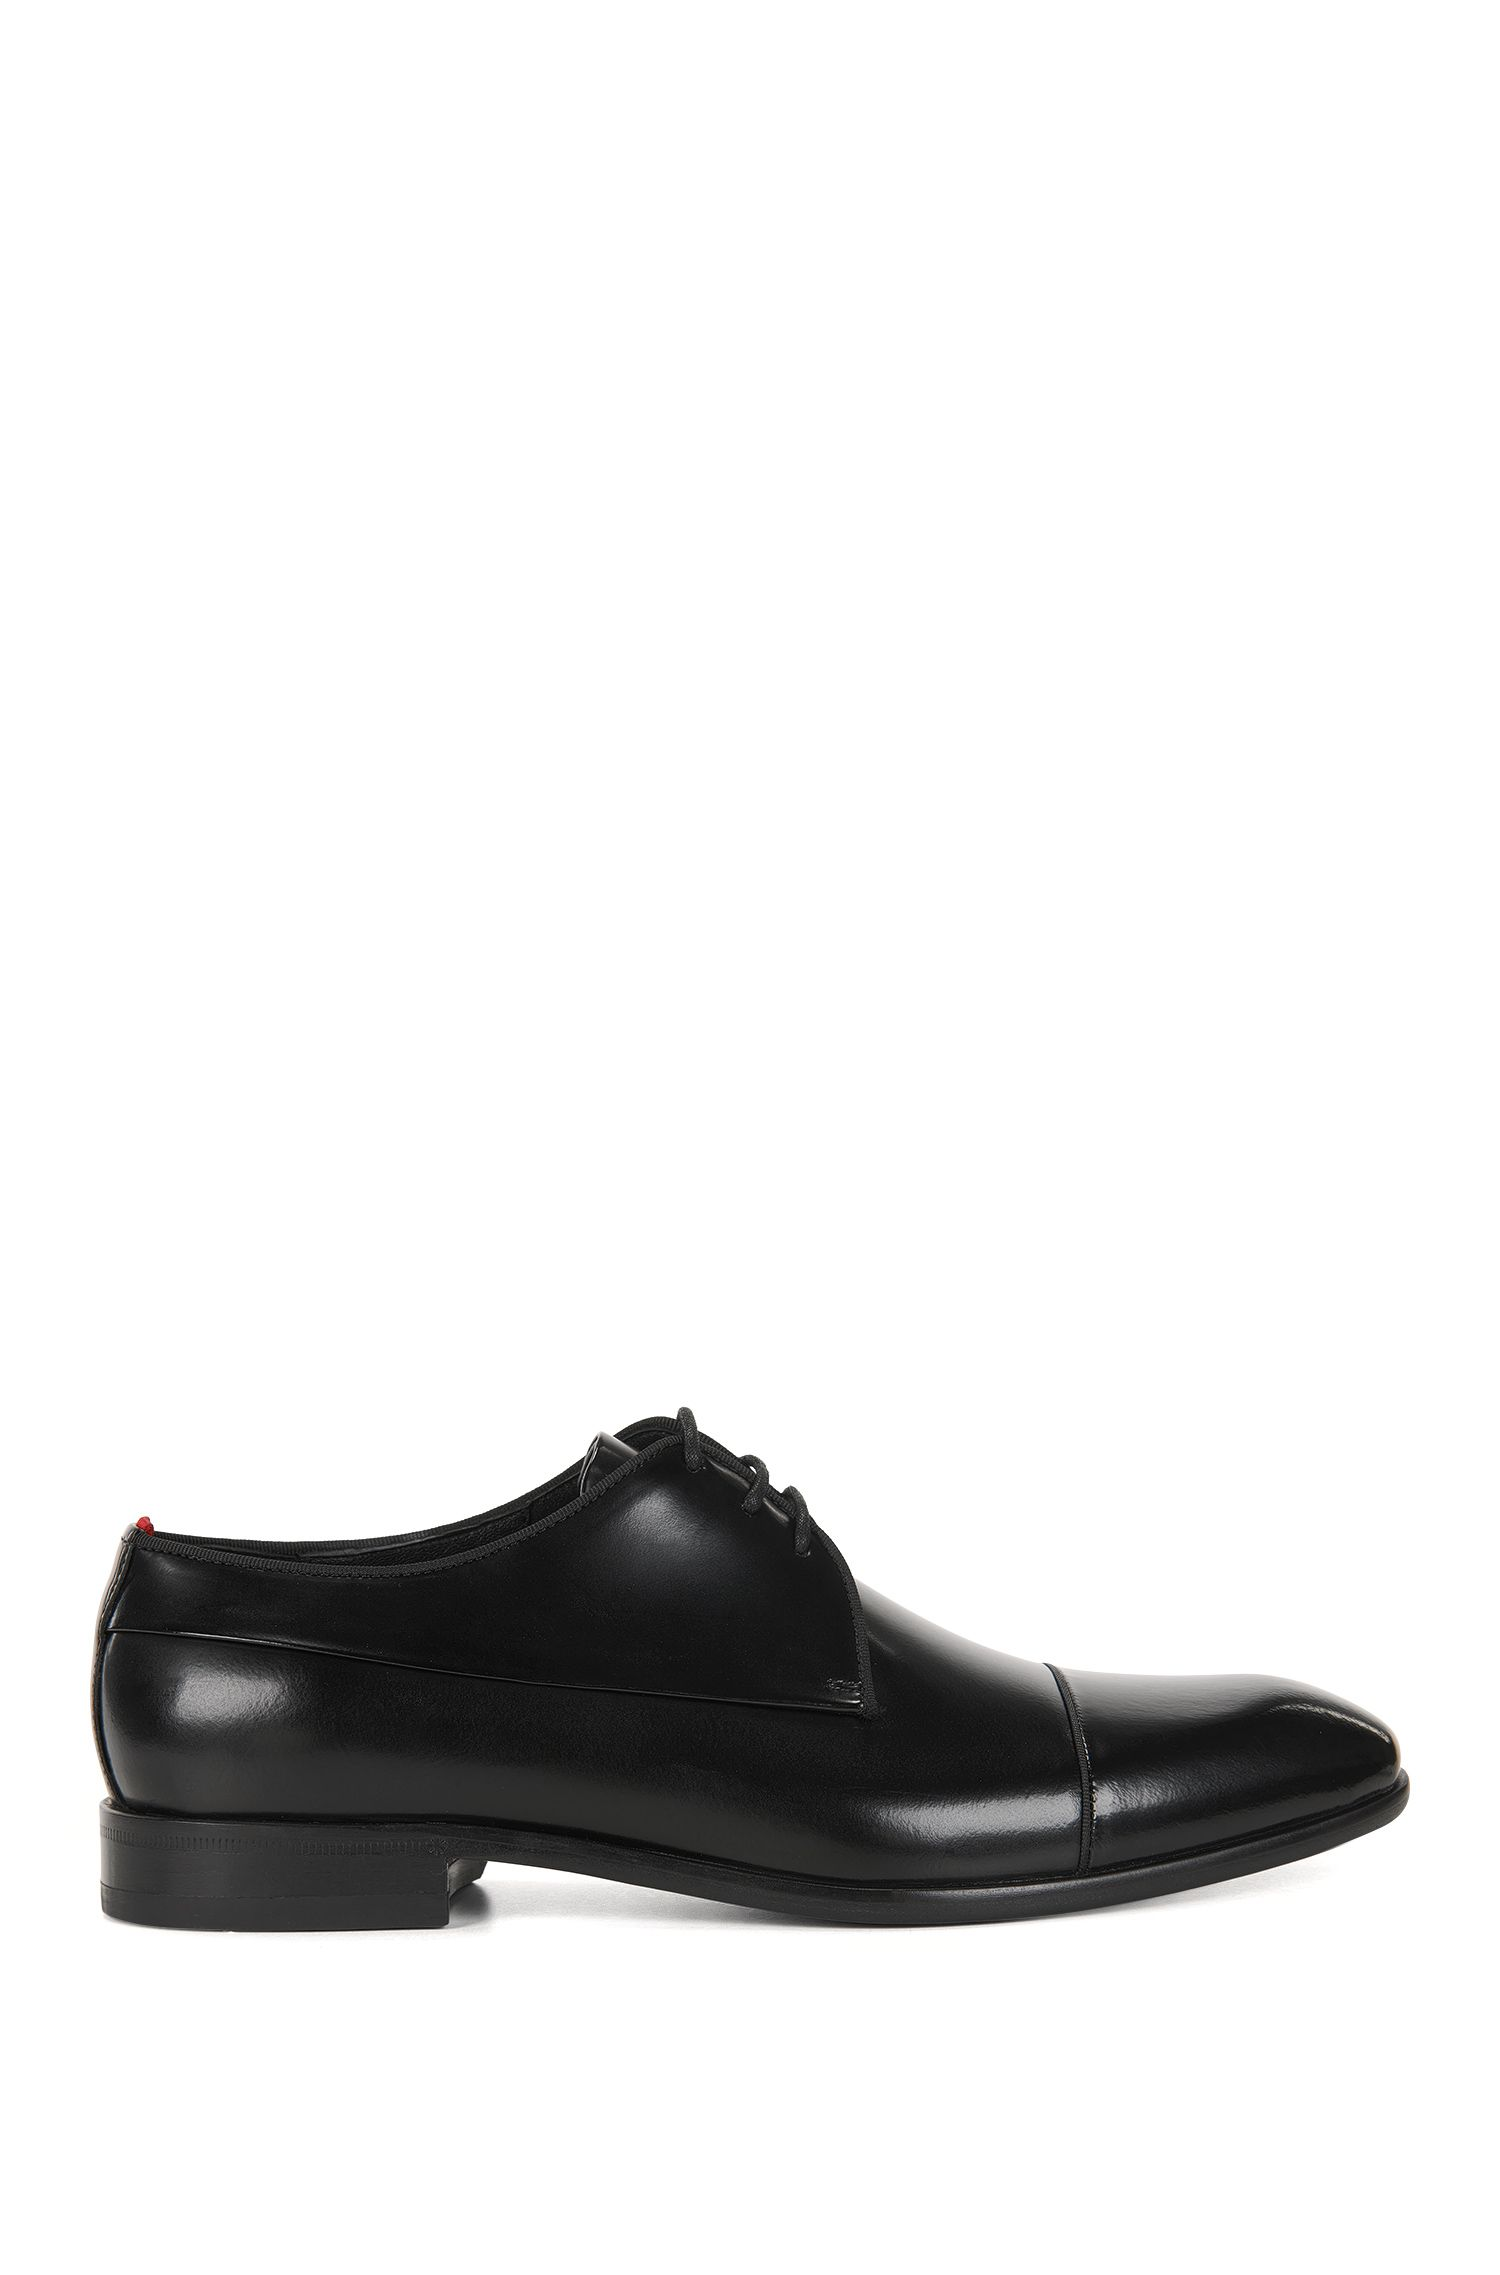 Derby shoes in polished leather